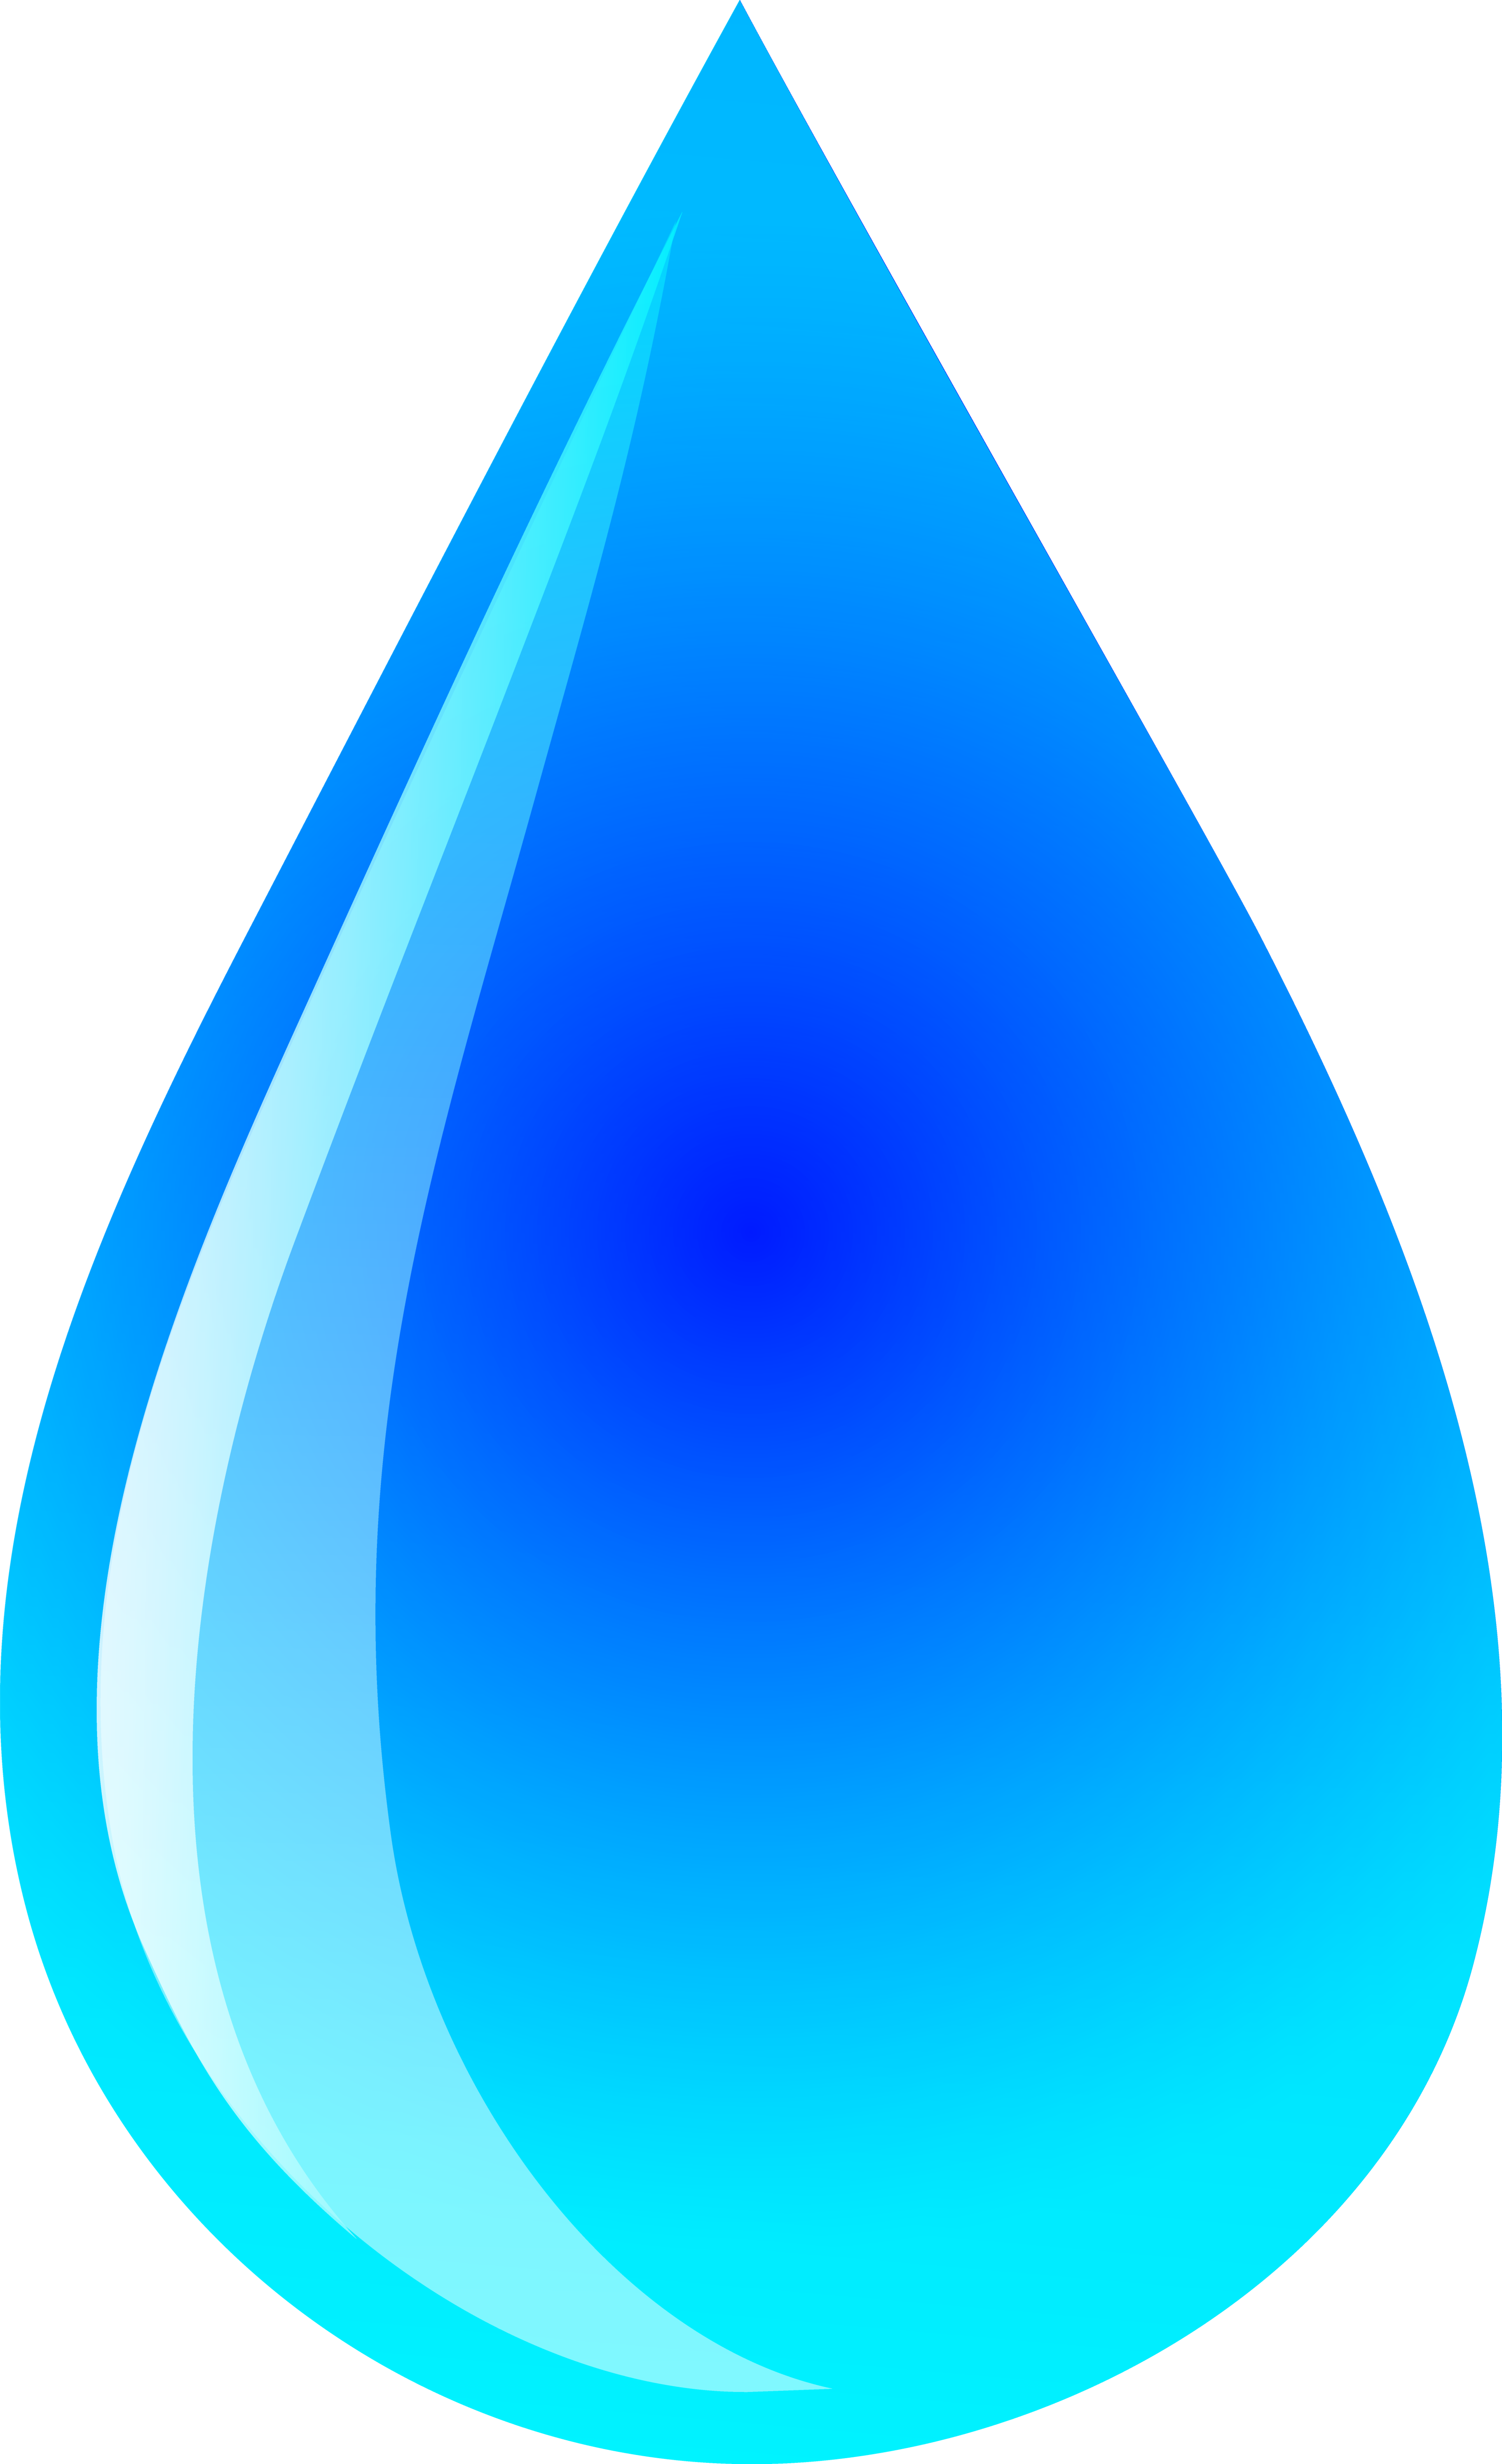 Raindrop clipart teardrop shape. Water droplets free collection